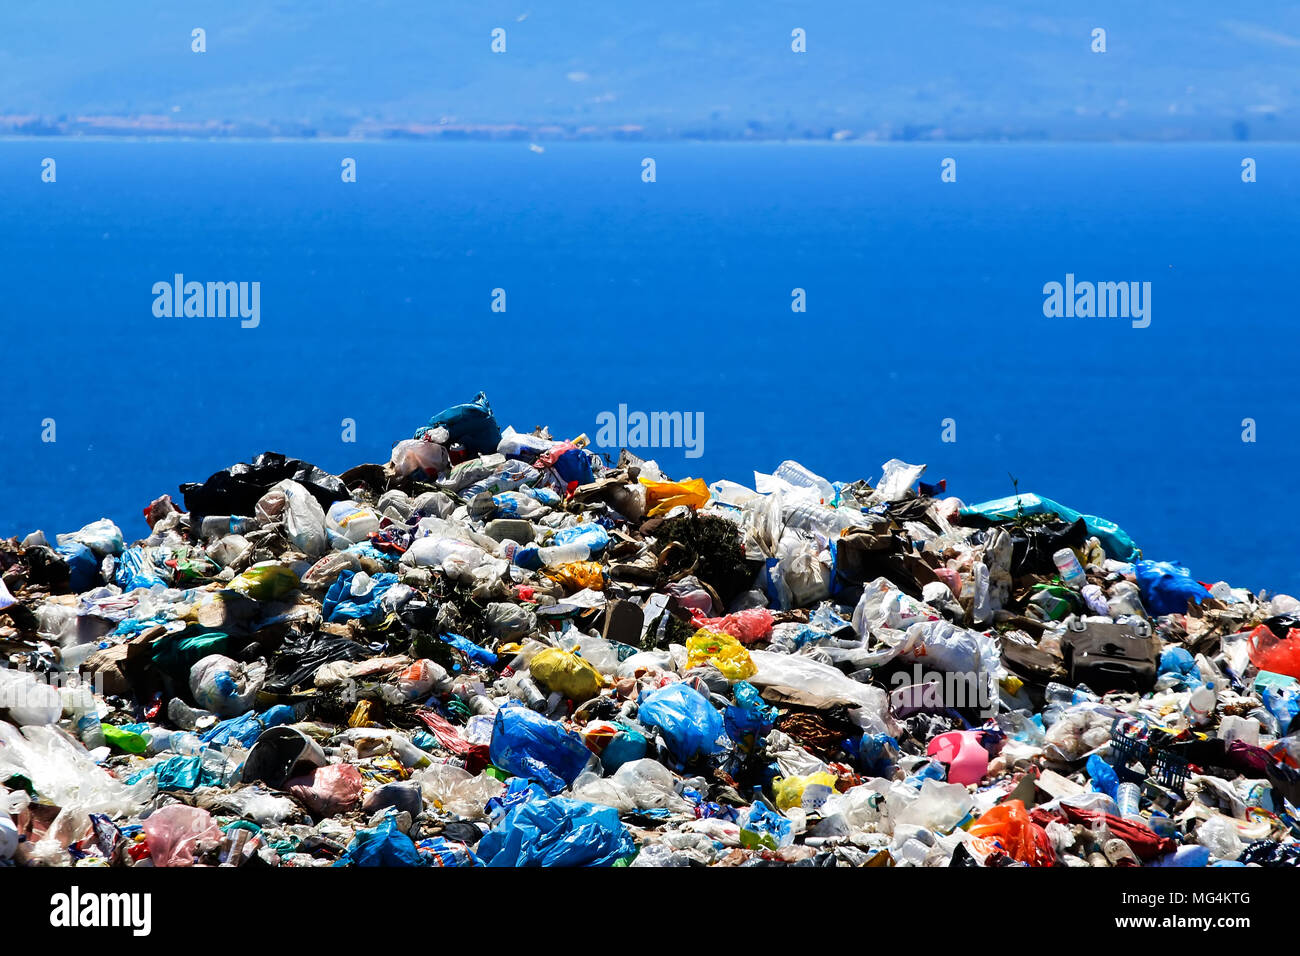 Garbage inside a processing plant - Stock Image